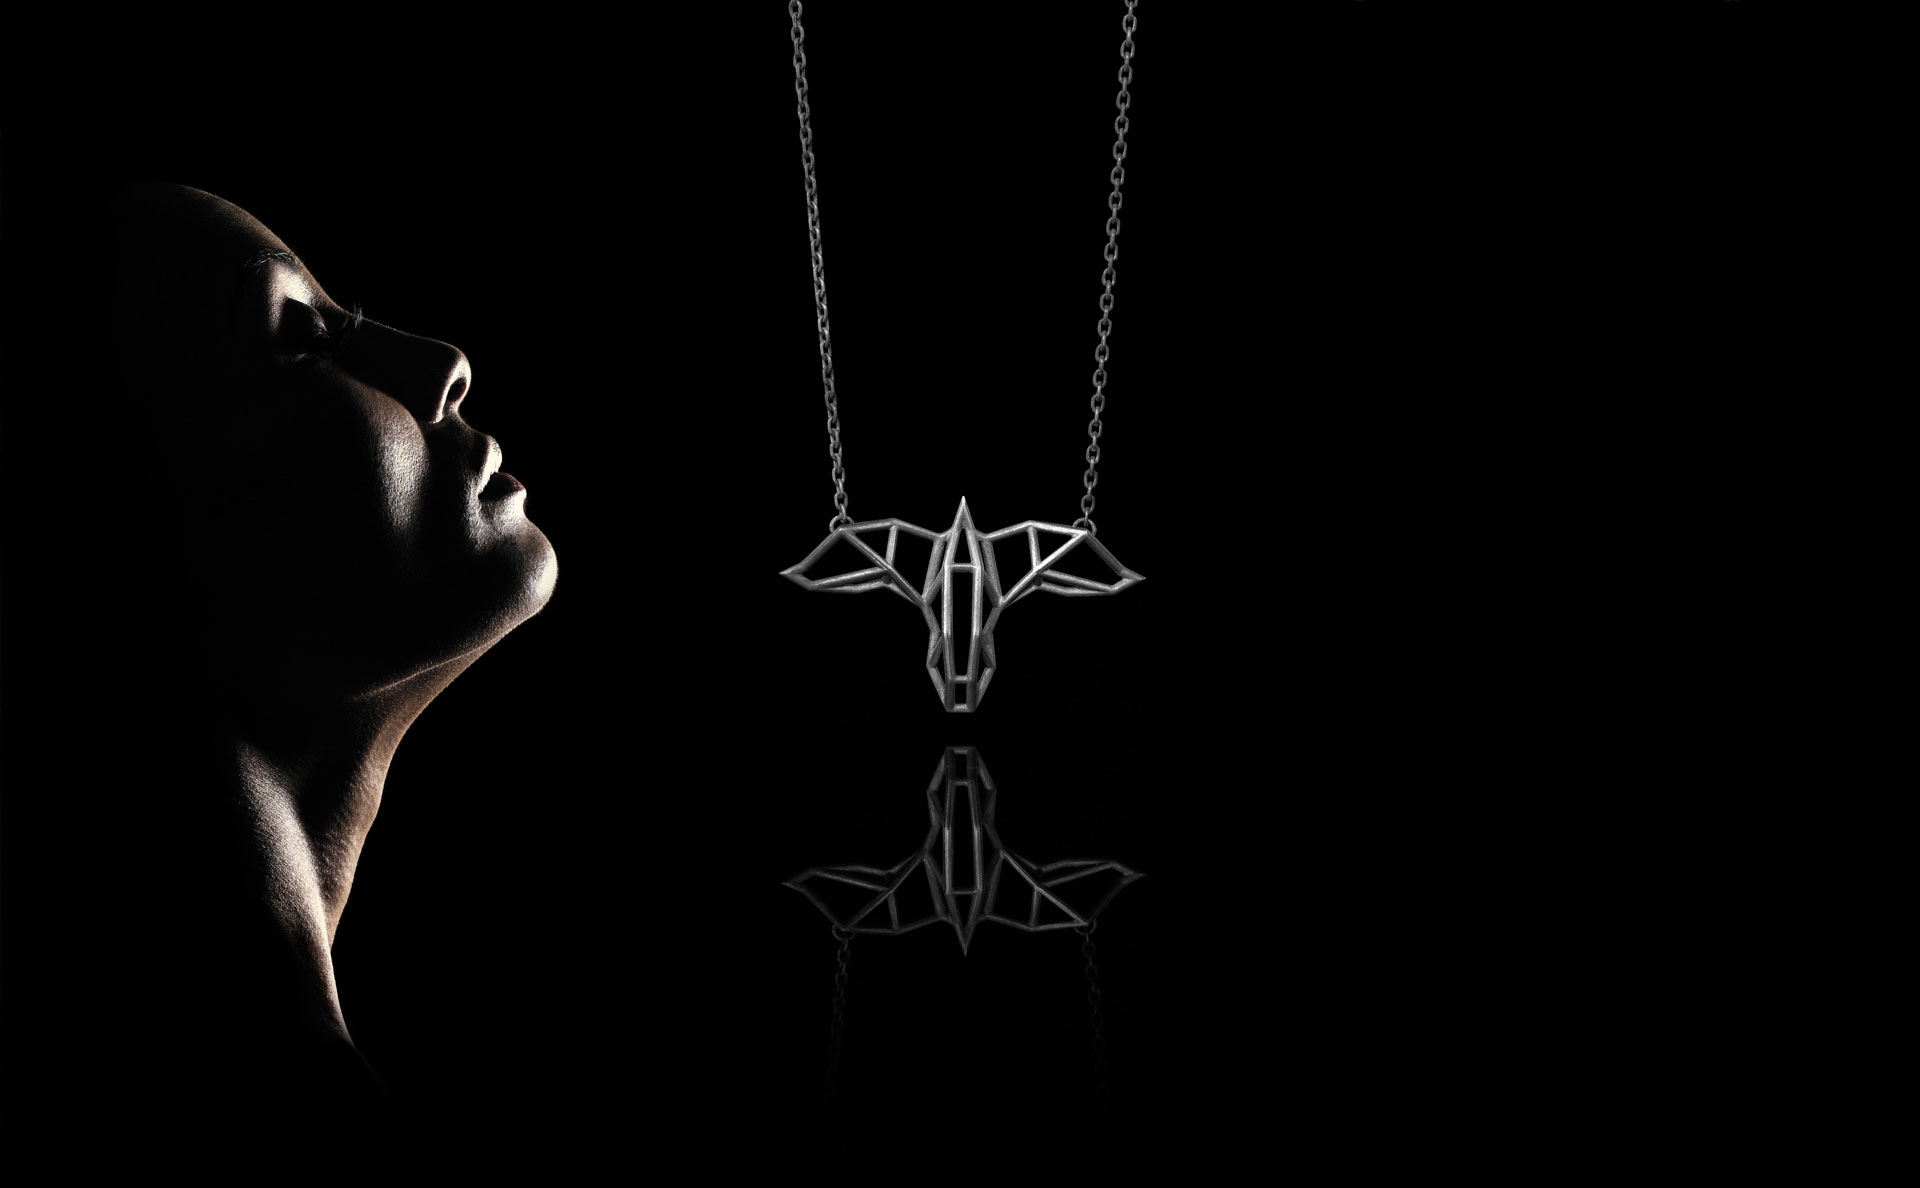 SEB Raven Black Silver Necklace Icelandic Fashion Jewellery Design Geometric Scandinavian Mysterious Nordic Mythology